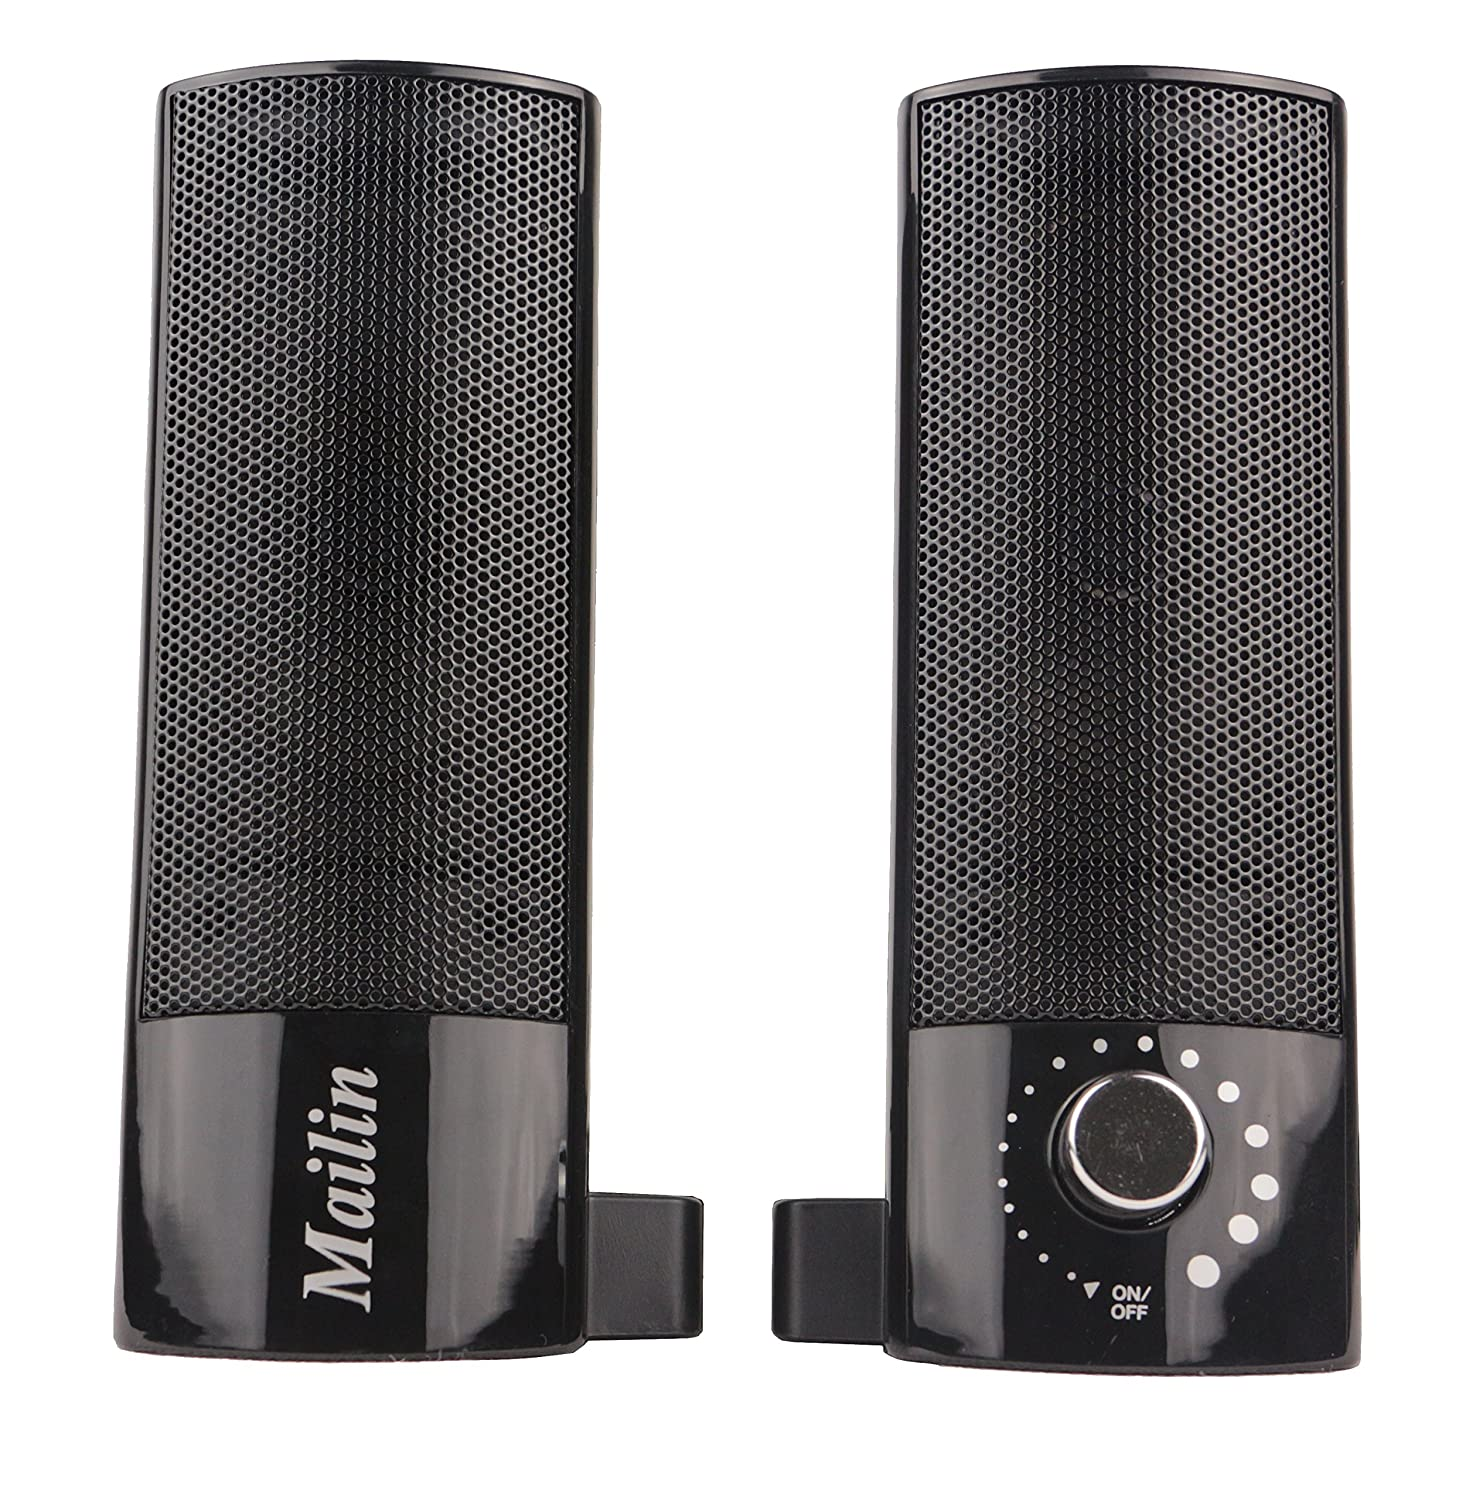 Mailin Detachable Computer Speaker, PC Speaker, Laptop Speaker, USB Power Supply 3.5mm Stereo Input, 5 Watts RMS Total Power with Volume Control Black